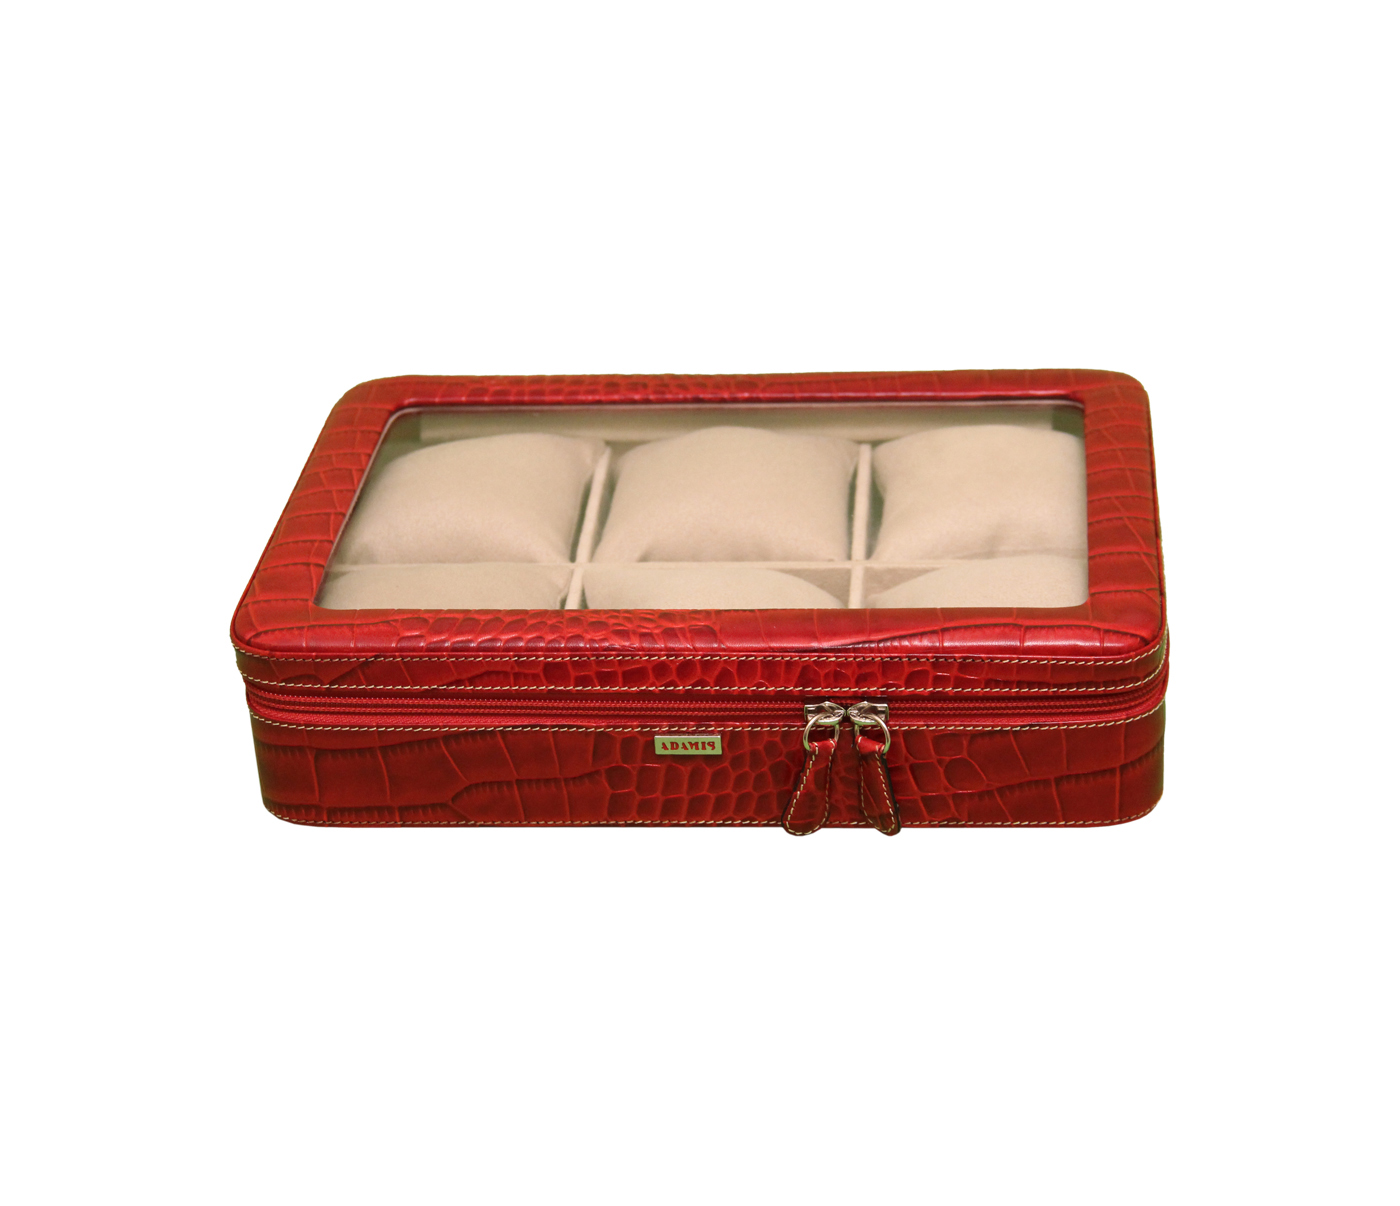 W212--Watch case to hold 6 watches in Genuine Leather - Red